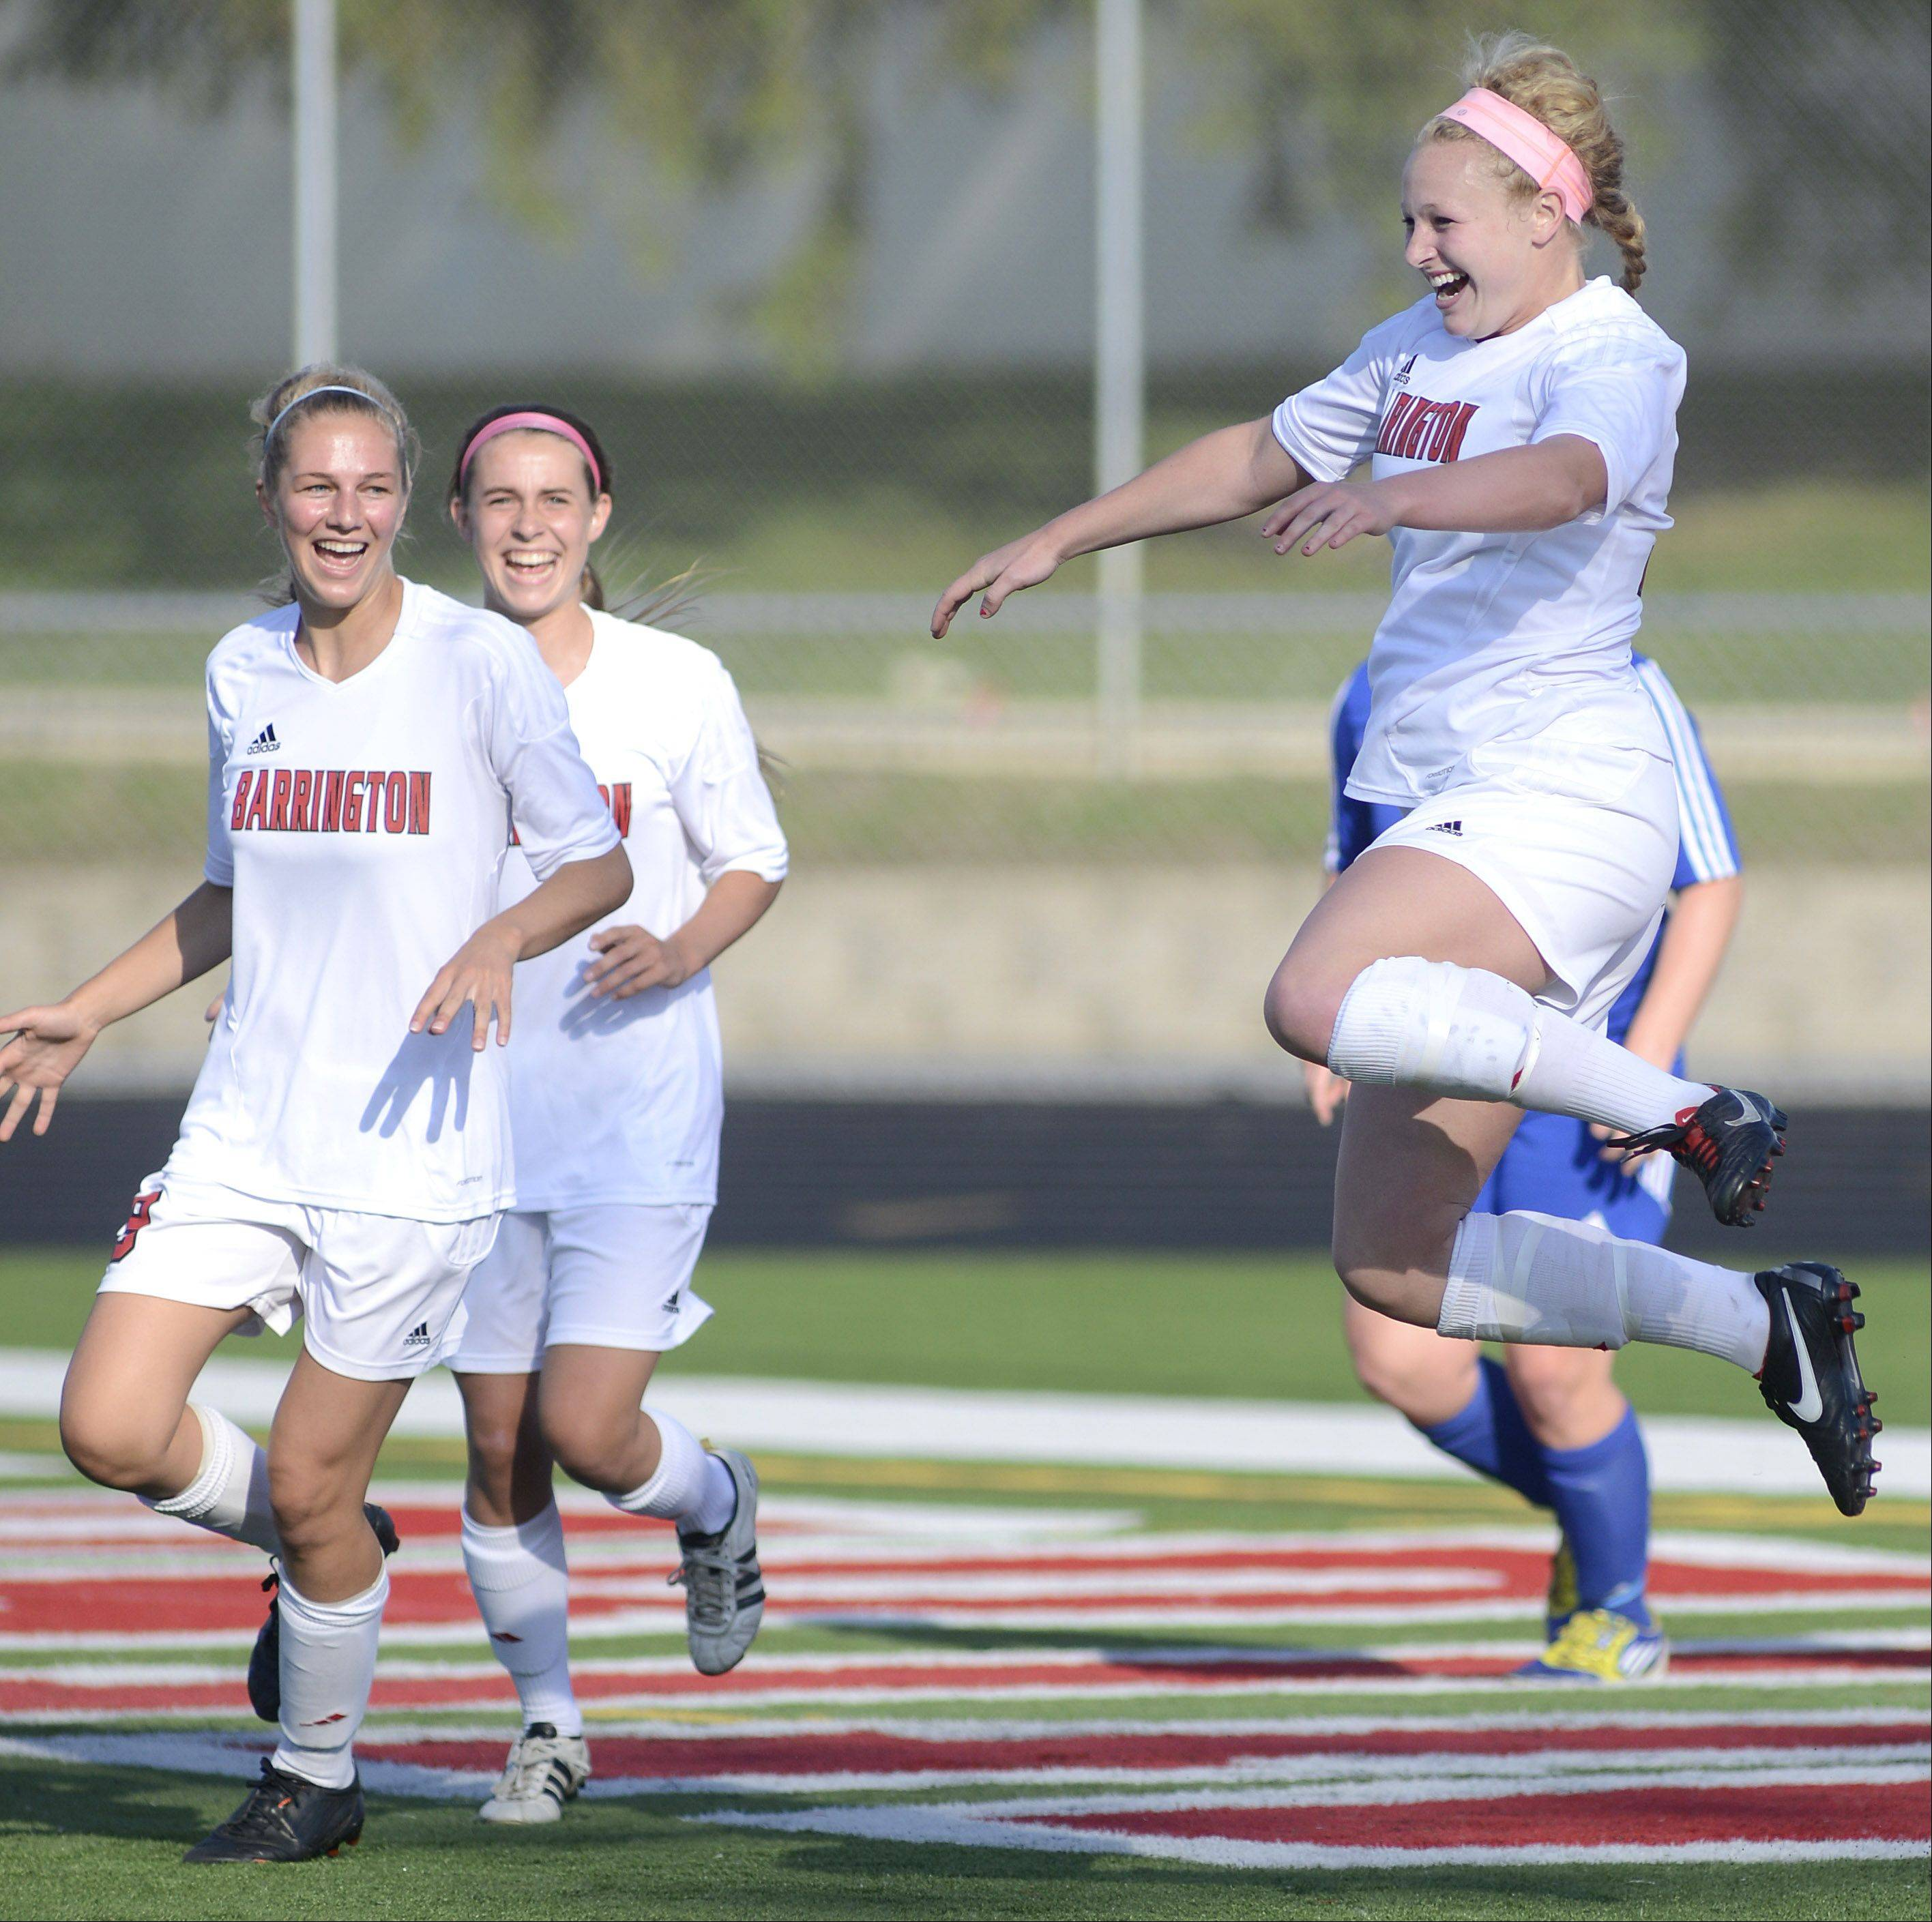 Barrington's Molly Pfeiffer leaps into the air in celebration after scoring a goal minutes into the first half of the Class 3A supersectional in Barrington on Wednesday.